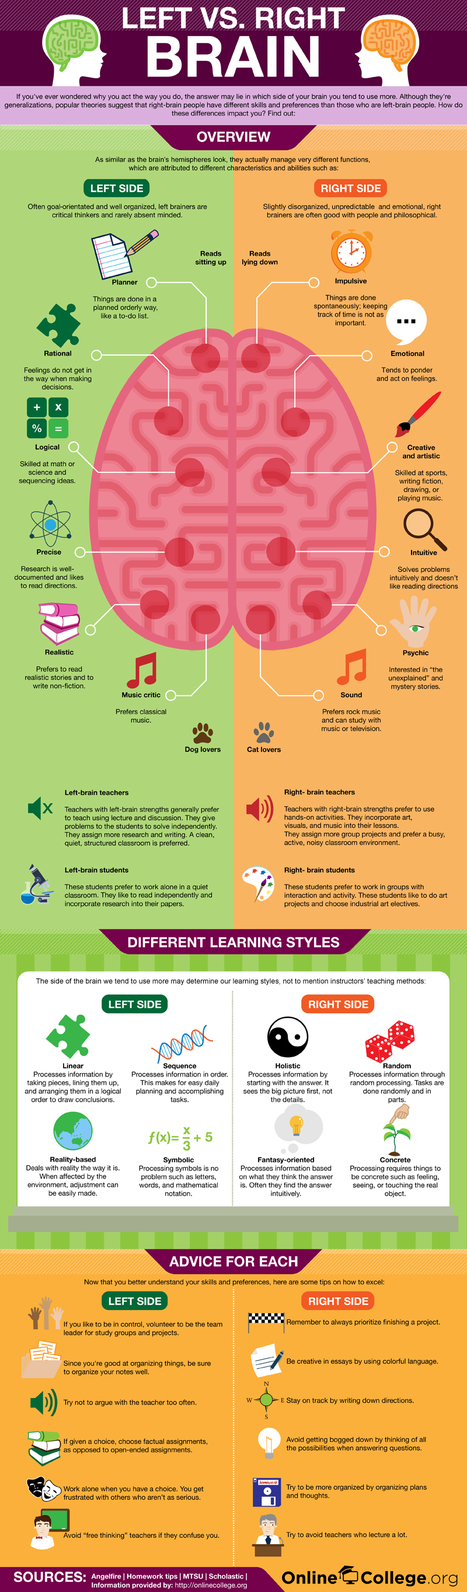 Are You Left or Right Brain? [Infographic] | Innovations pédagogiques numériques | Scoop.it